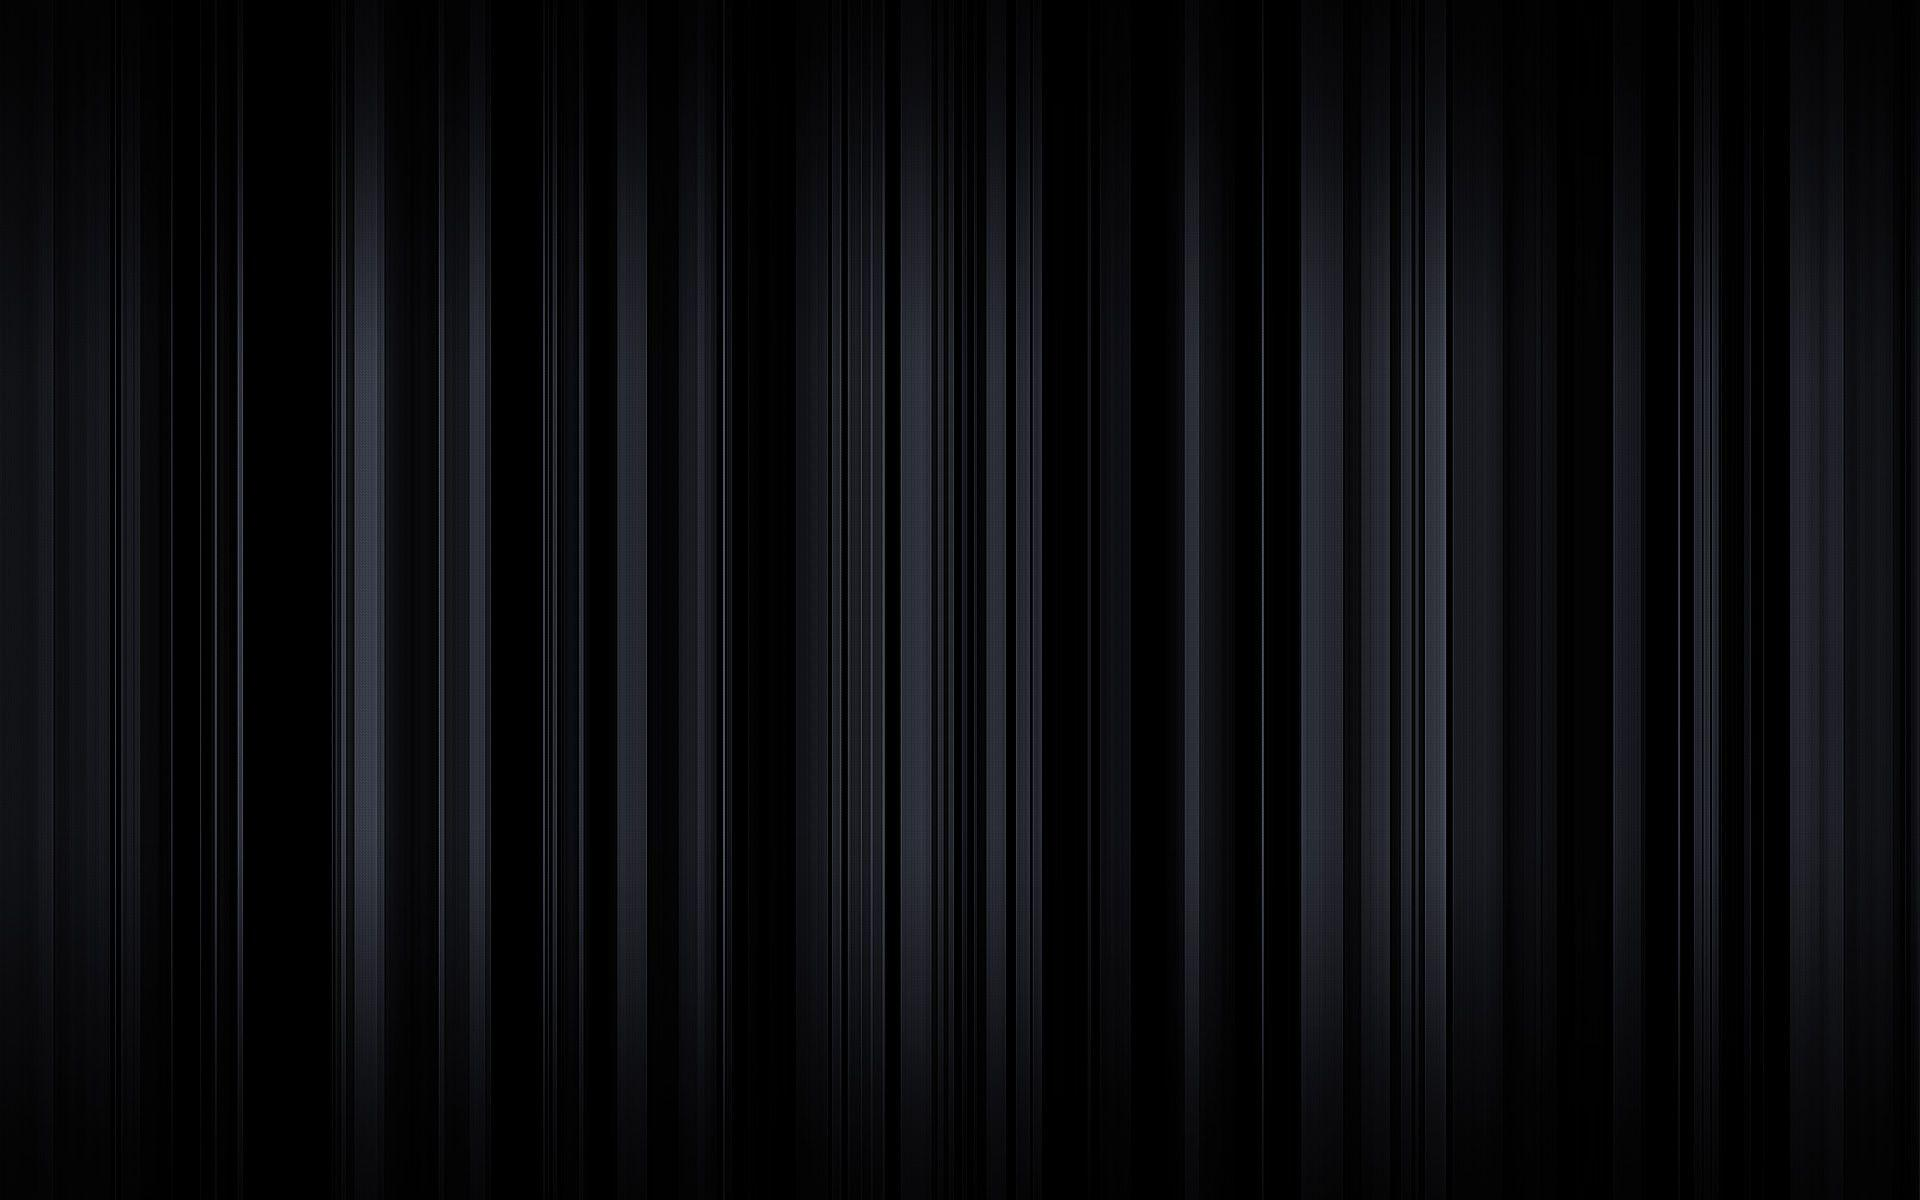 Black Striped Wallpapers - Wallpaper Cave